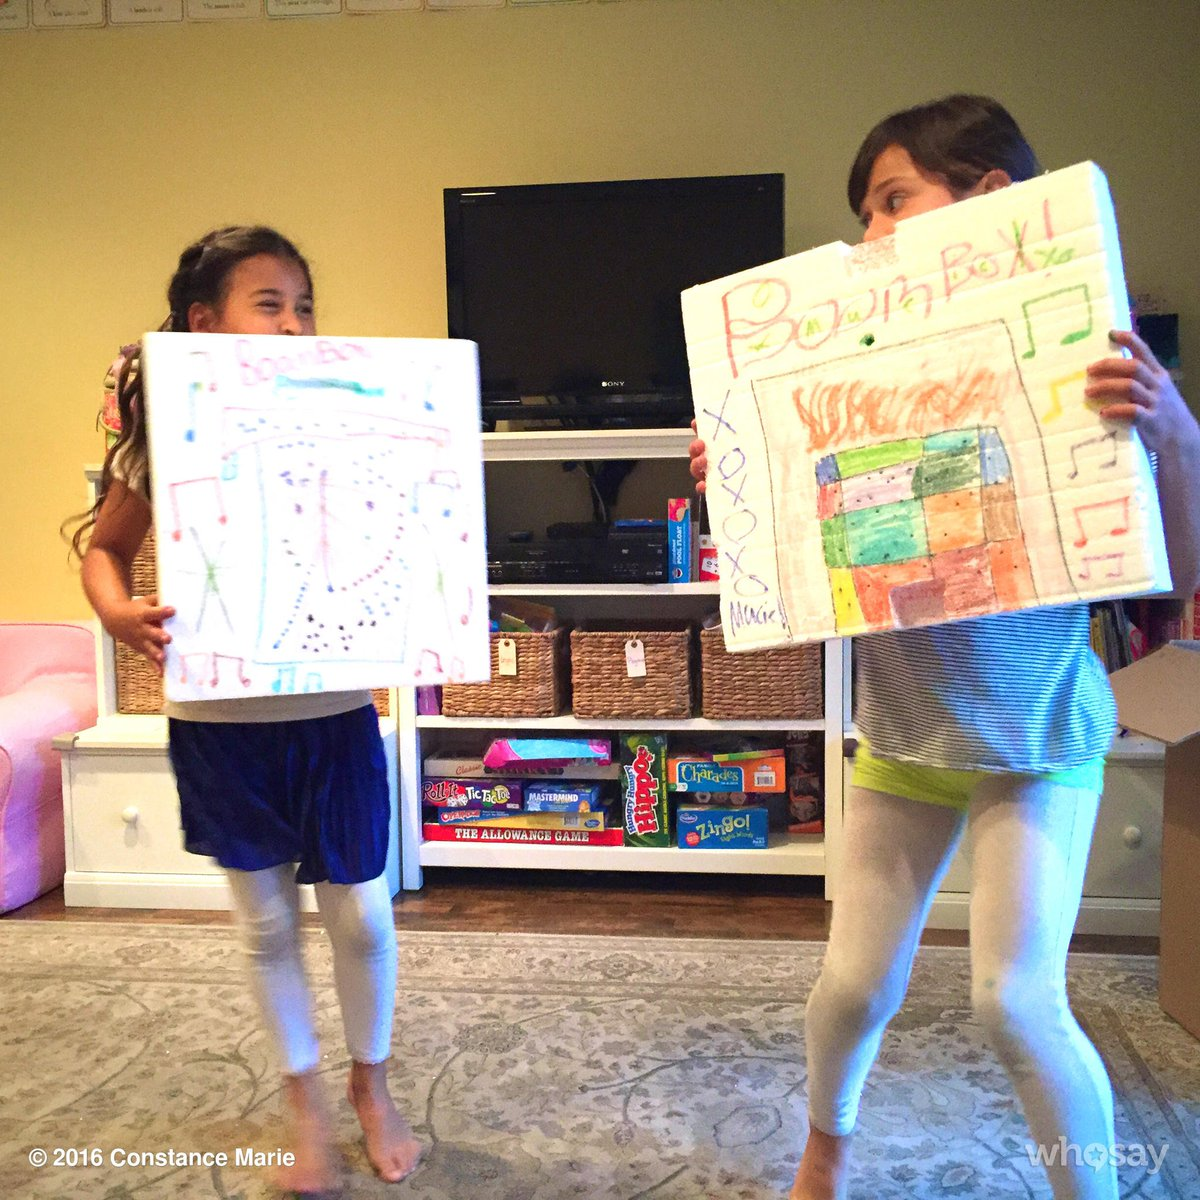 WOW!!! @lauramarano  My girls LOVE #BoomBox SO MUCH!! They've made their own!! #Saturday #DanceParty https://t.co/vp0L1tGrYY